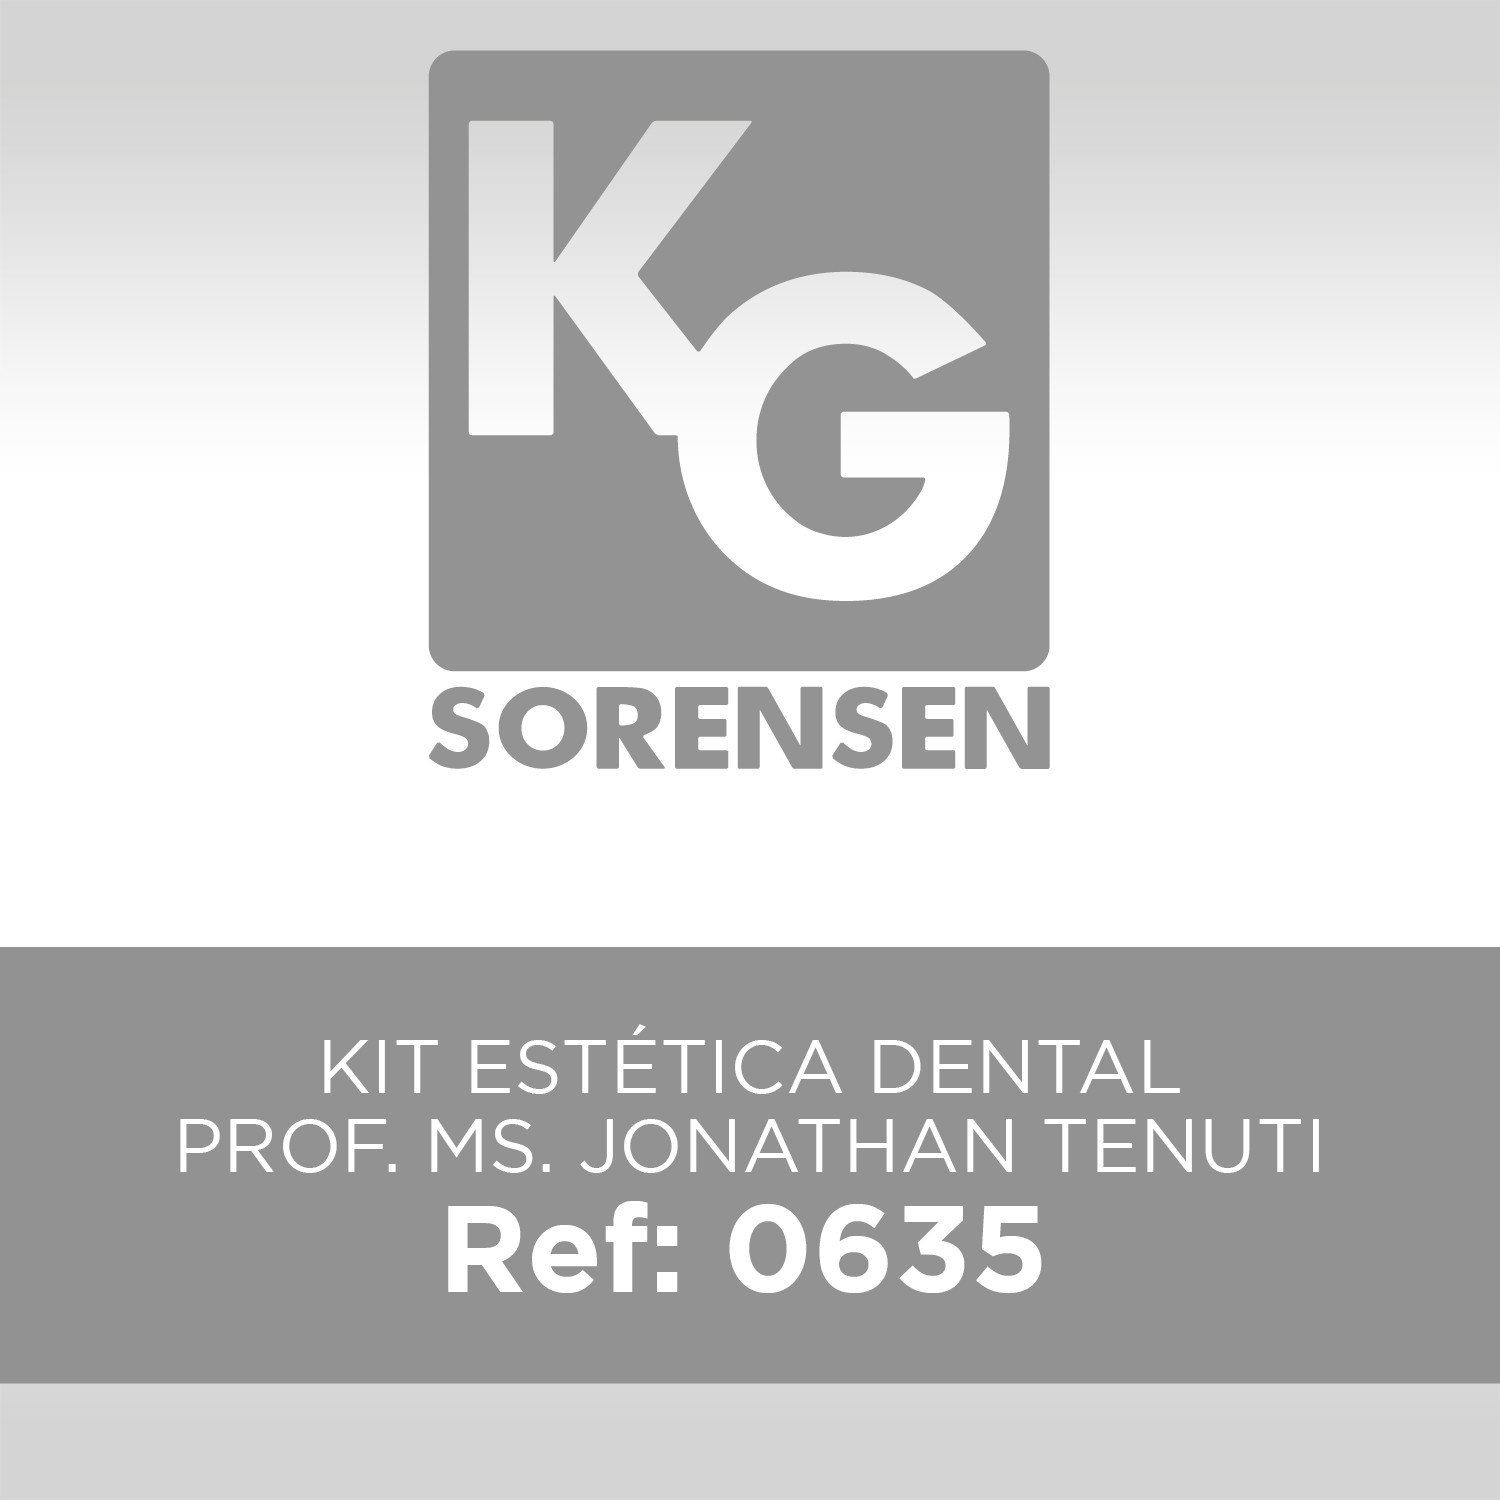 Kit Estética Dental - Prof. Ms. Jonathan Tenuti